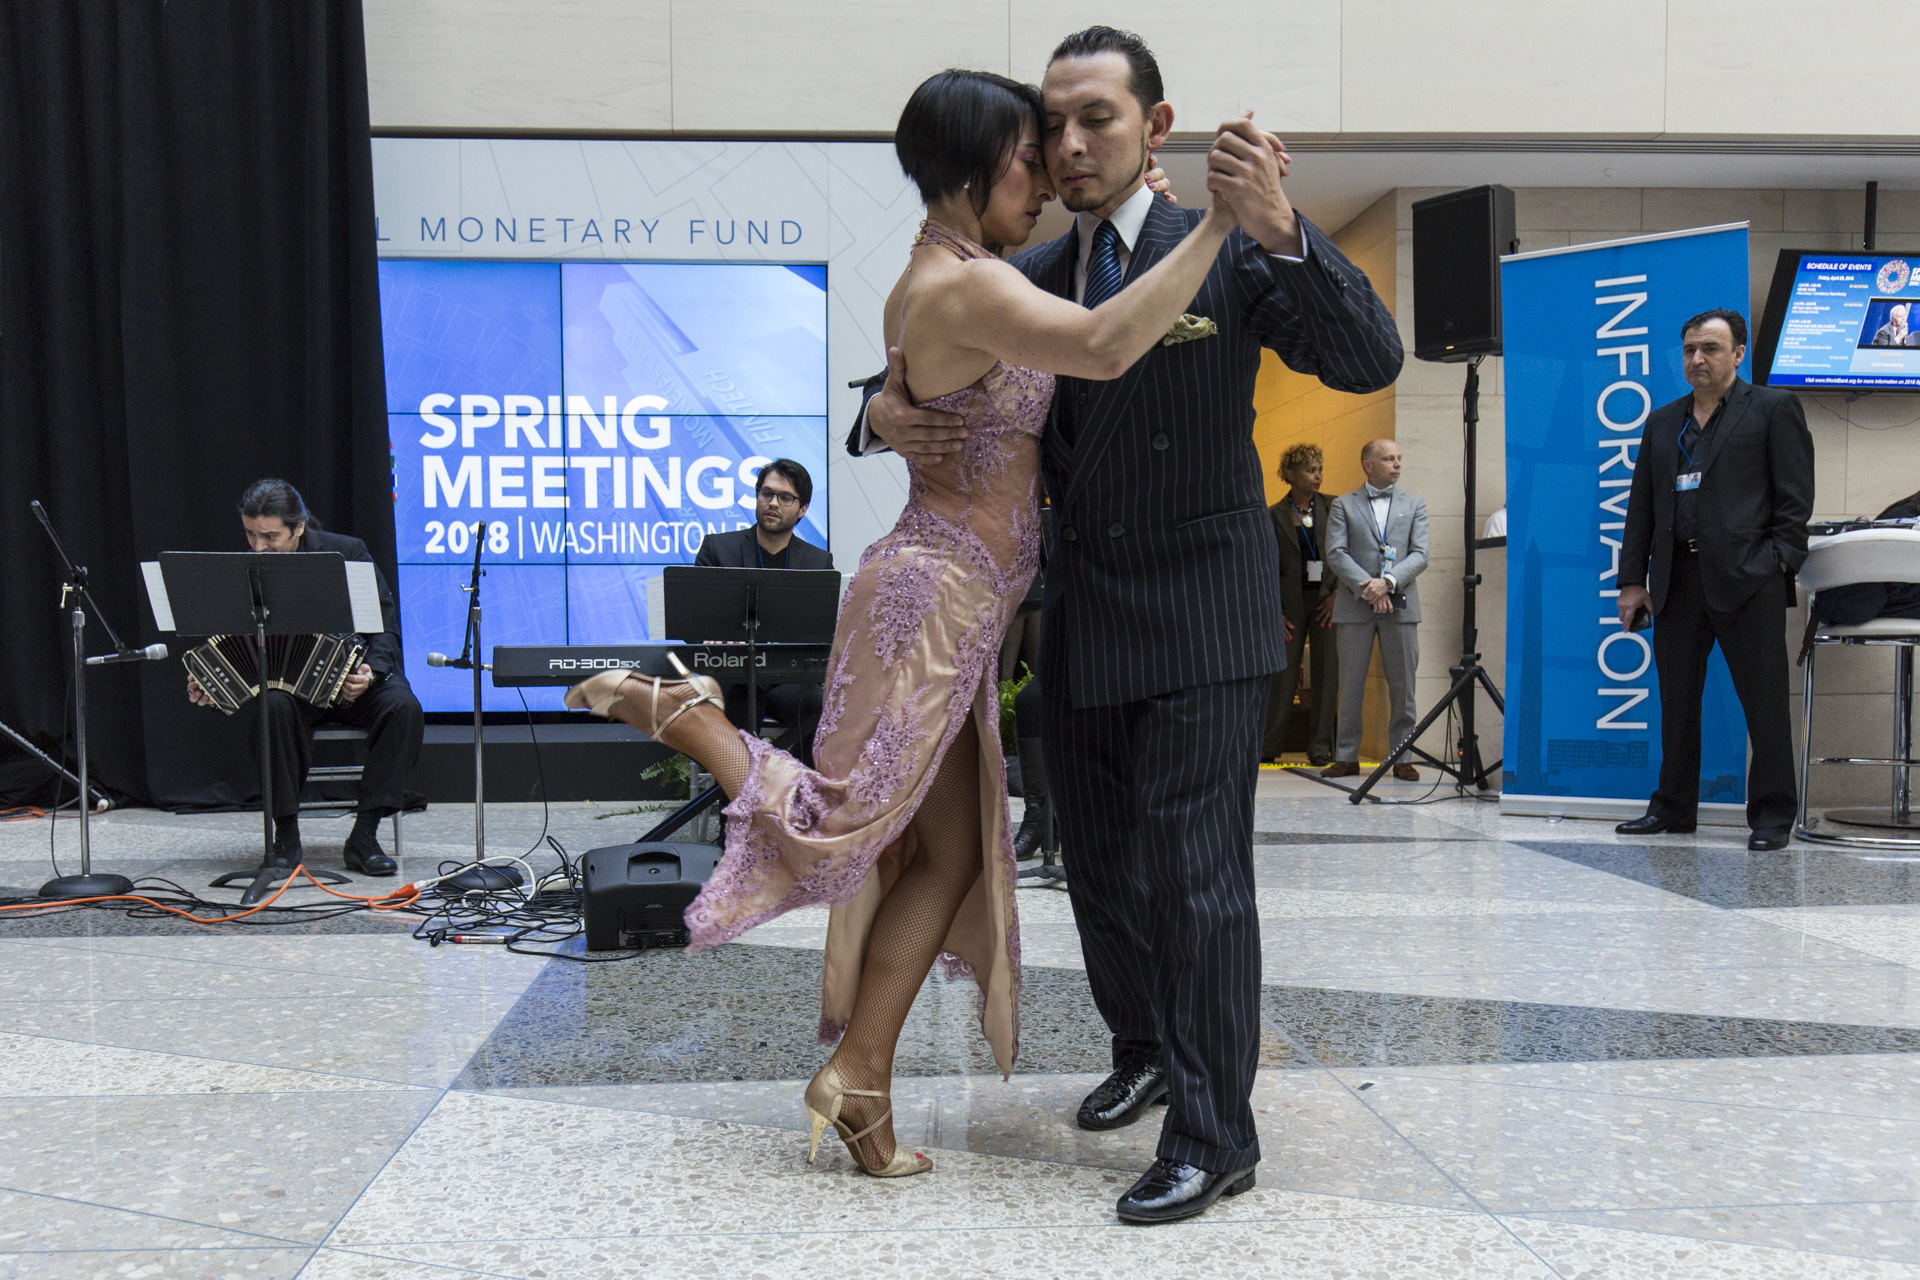 Tango Dance Step Diagram Multiple Dancers Argentinian Cultural Event Argentine This Which Is Sponsored By The G 20 Presidency Features A Captivating Pair Of Performing Traditional